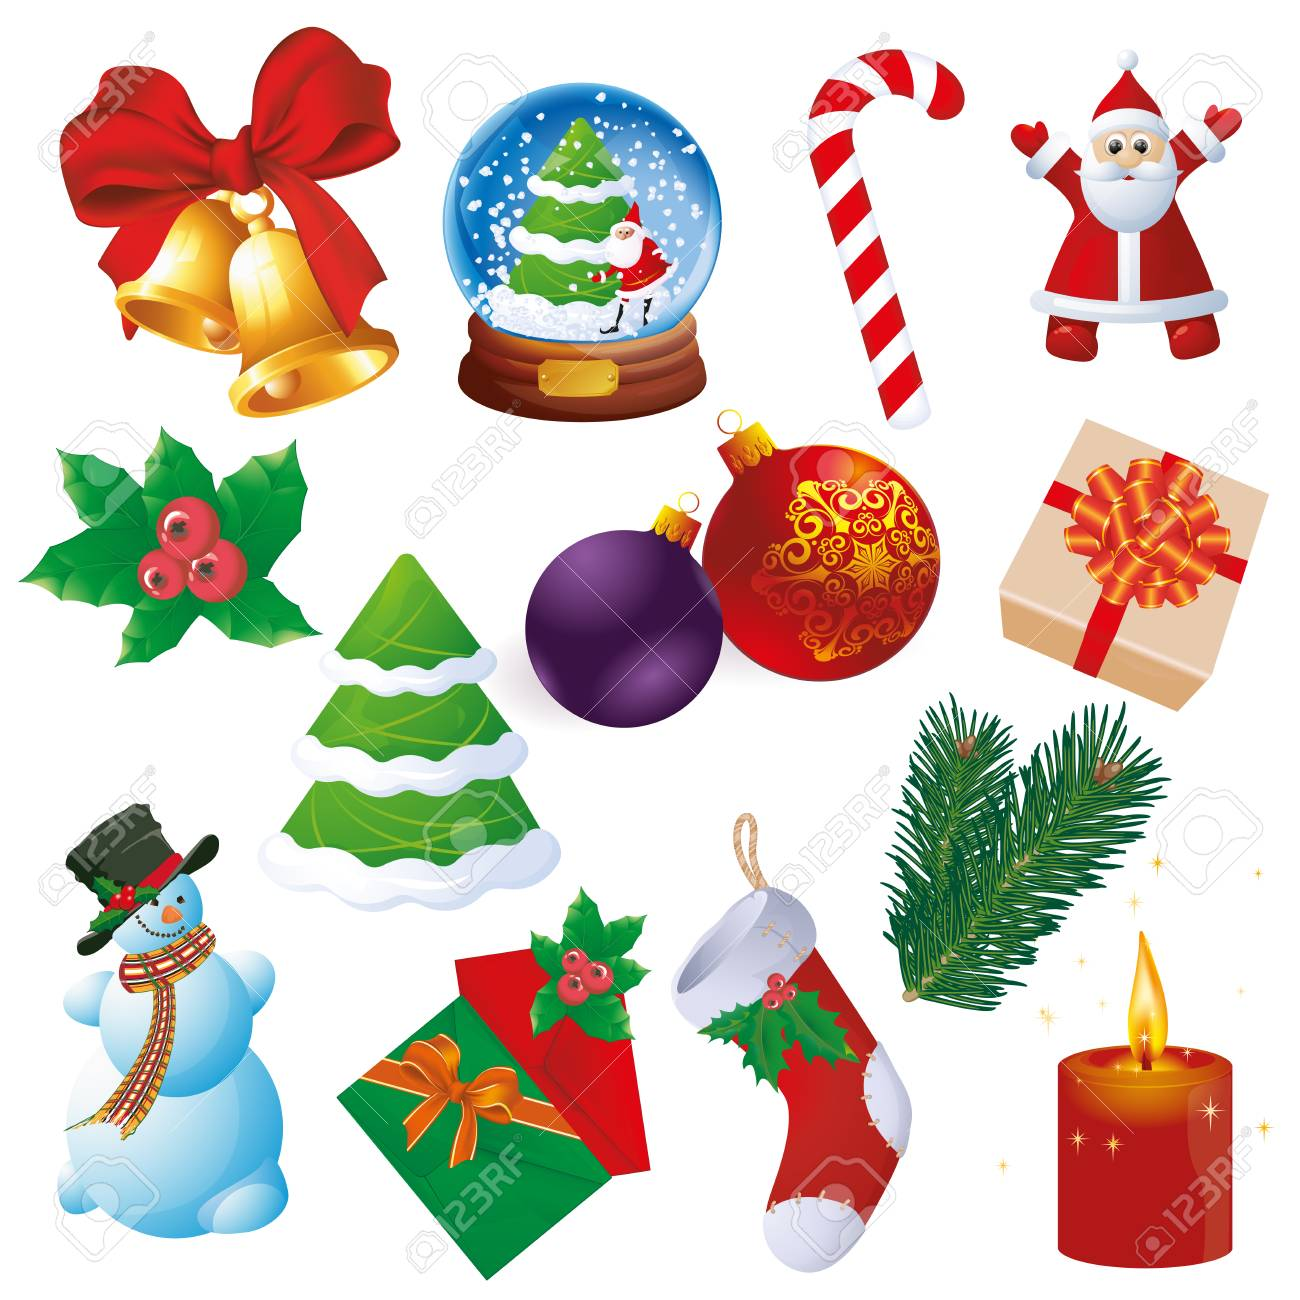 Christmas and new year design and decoration vector element set. - 116472580